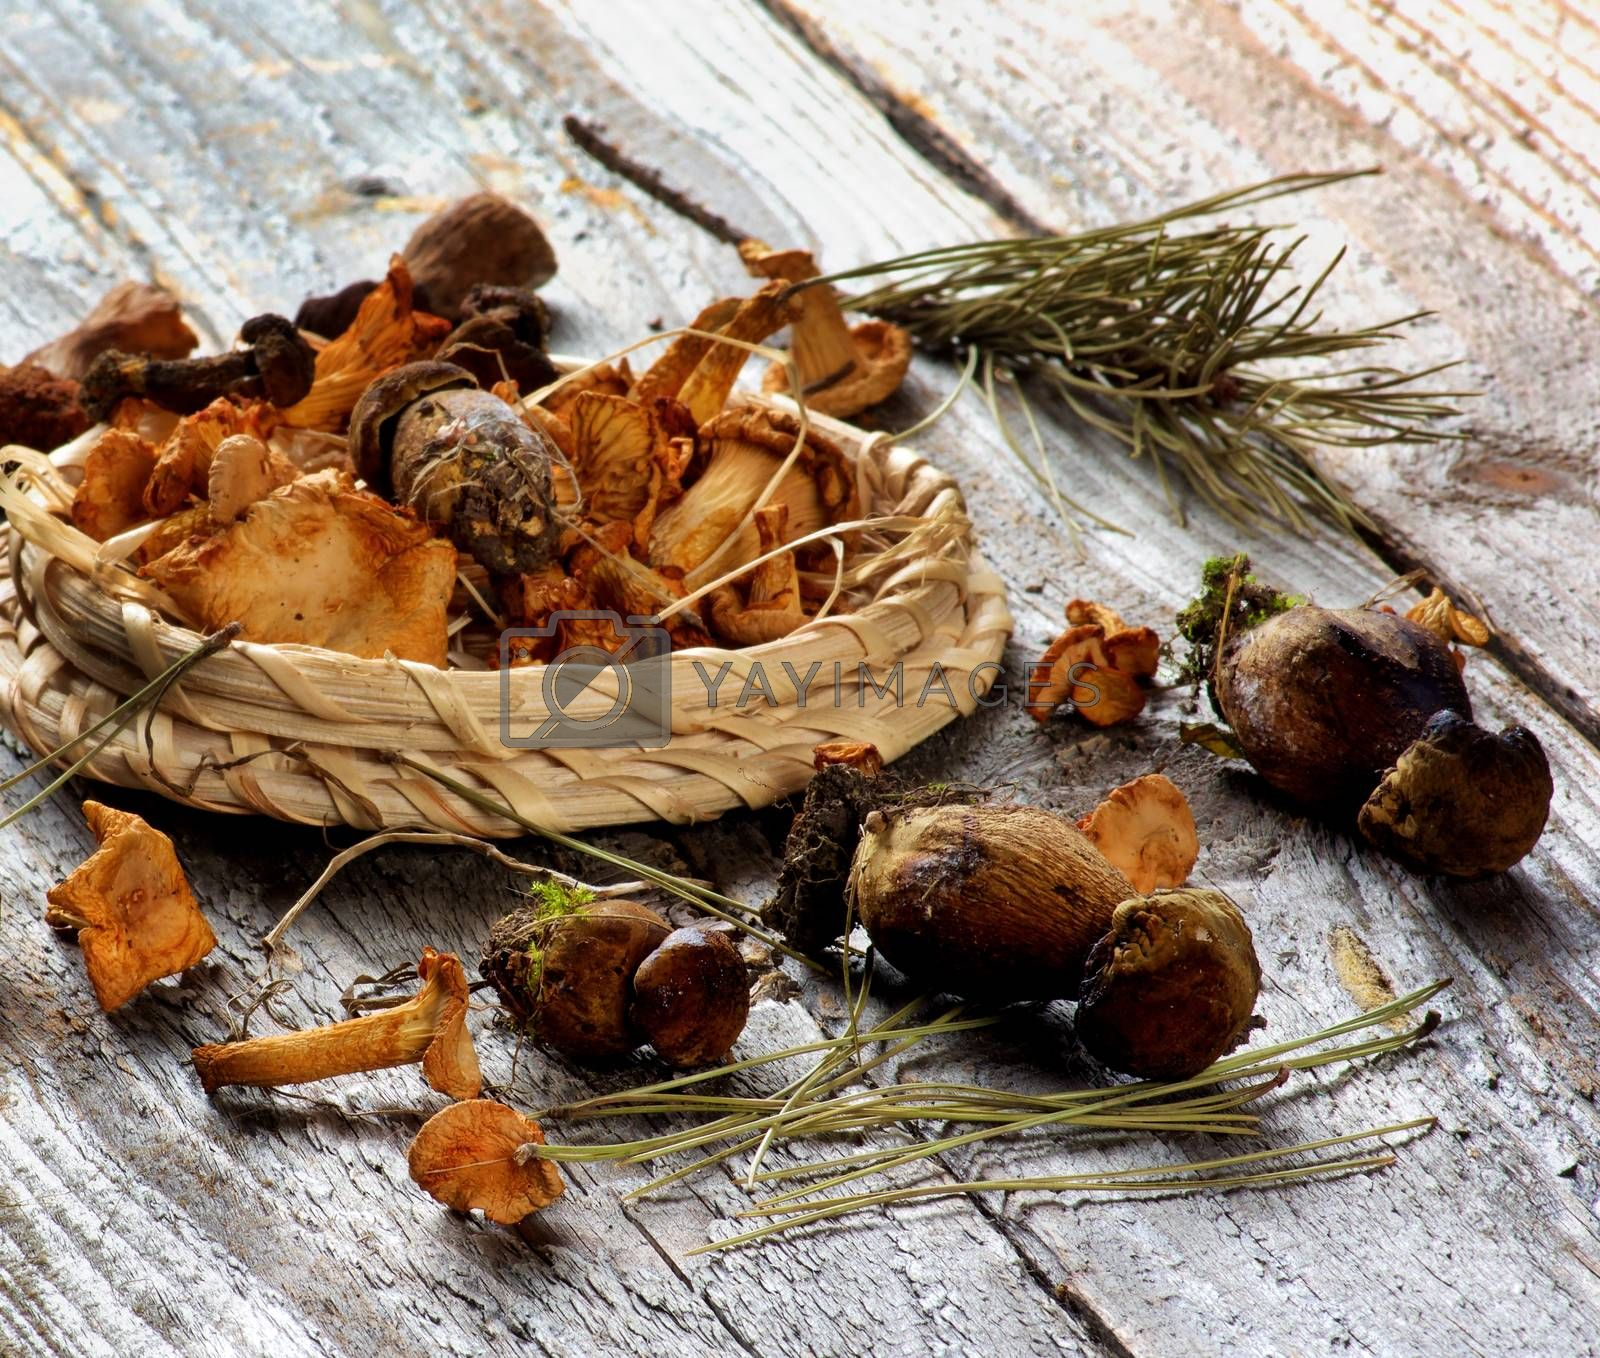 Forest Dried Mushrooms with Chanterelles, Porcini, Boletus Mushrooms in Wicker Plate with Pine Branches closeup Rustic Wooden background. Focus on Foreground